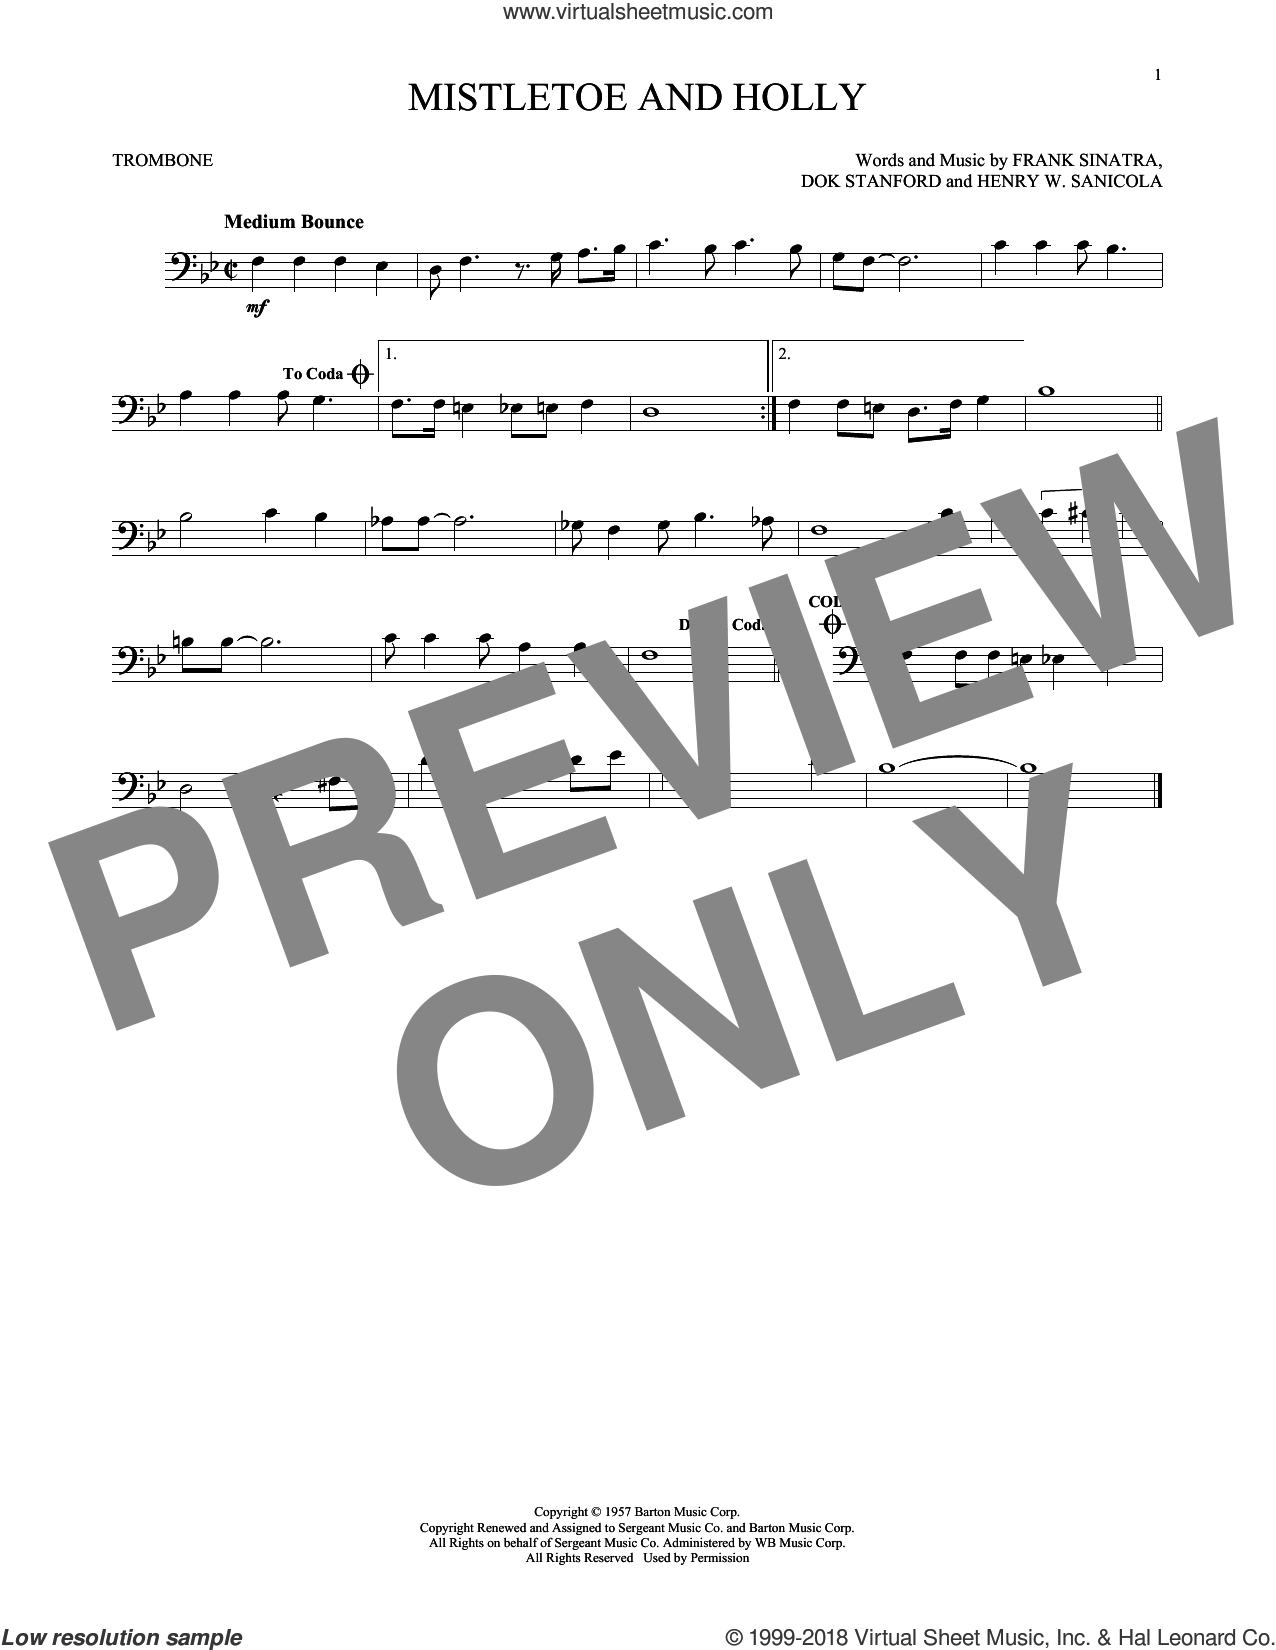 Mistletoe And Holly sheet music for trombone solo by Frank Sinatra, Dok Stanford and Henry W. Sanicola, intermediate skill level